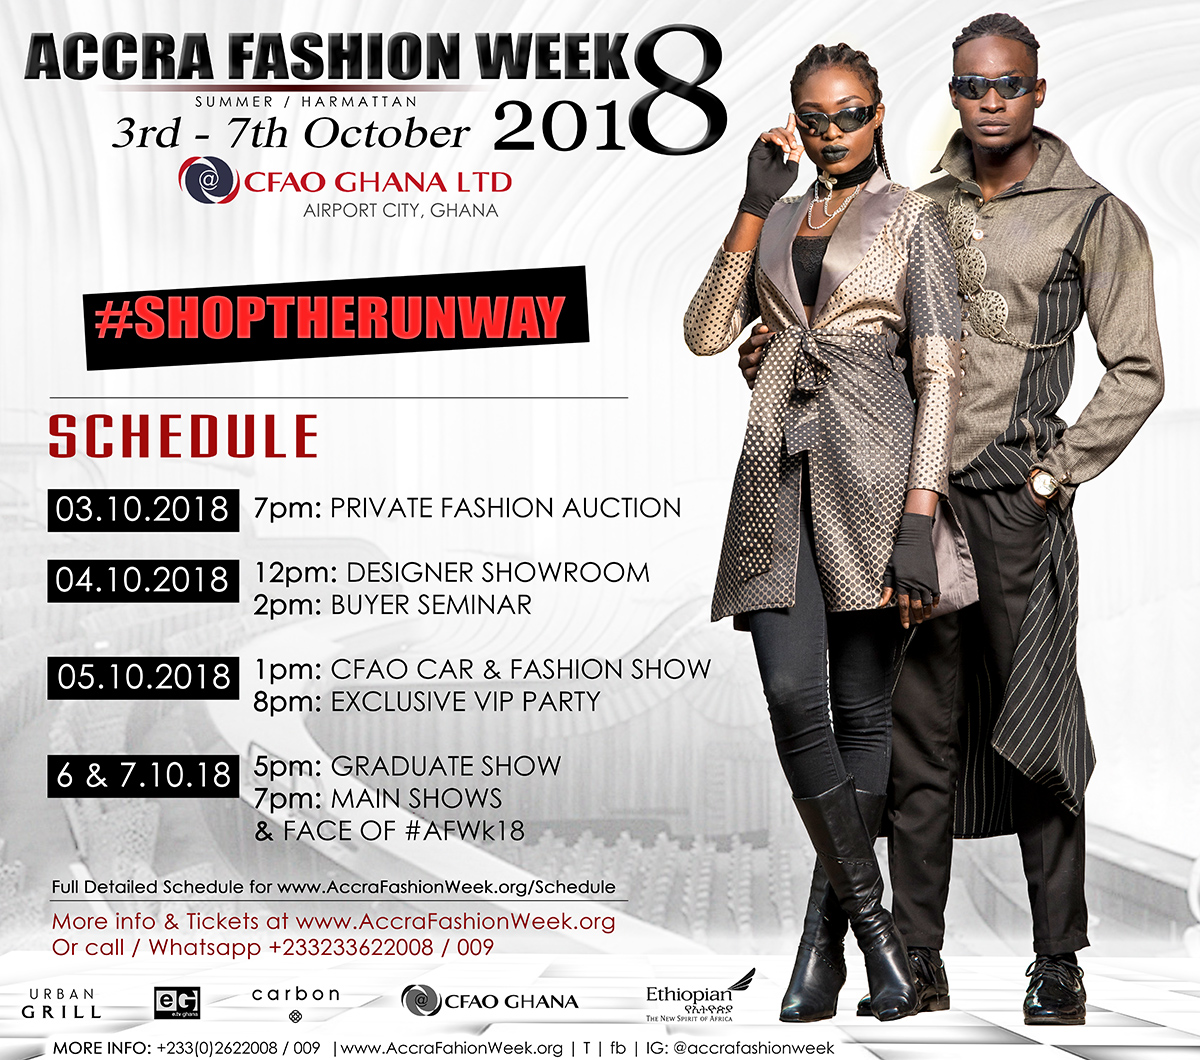 Accra Fashion Week Summer Harmattan18 To Be Hosted By CFAO